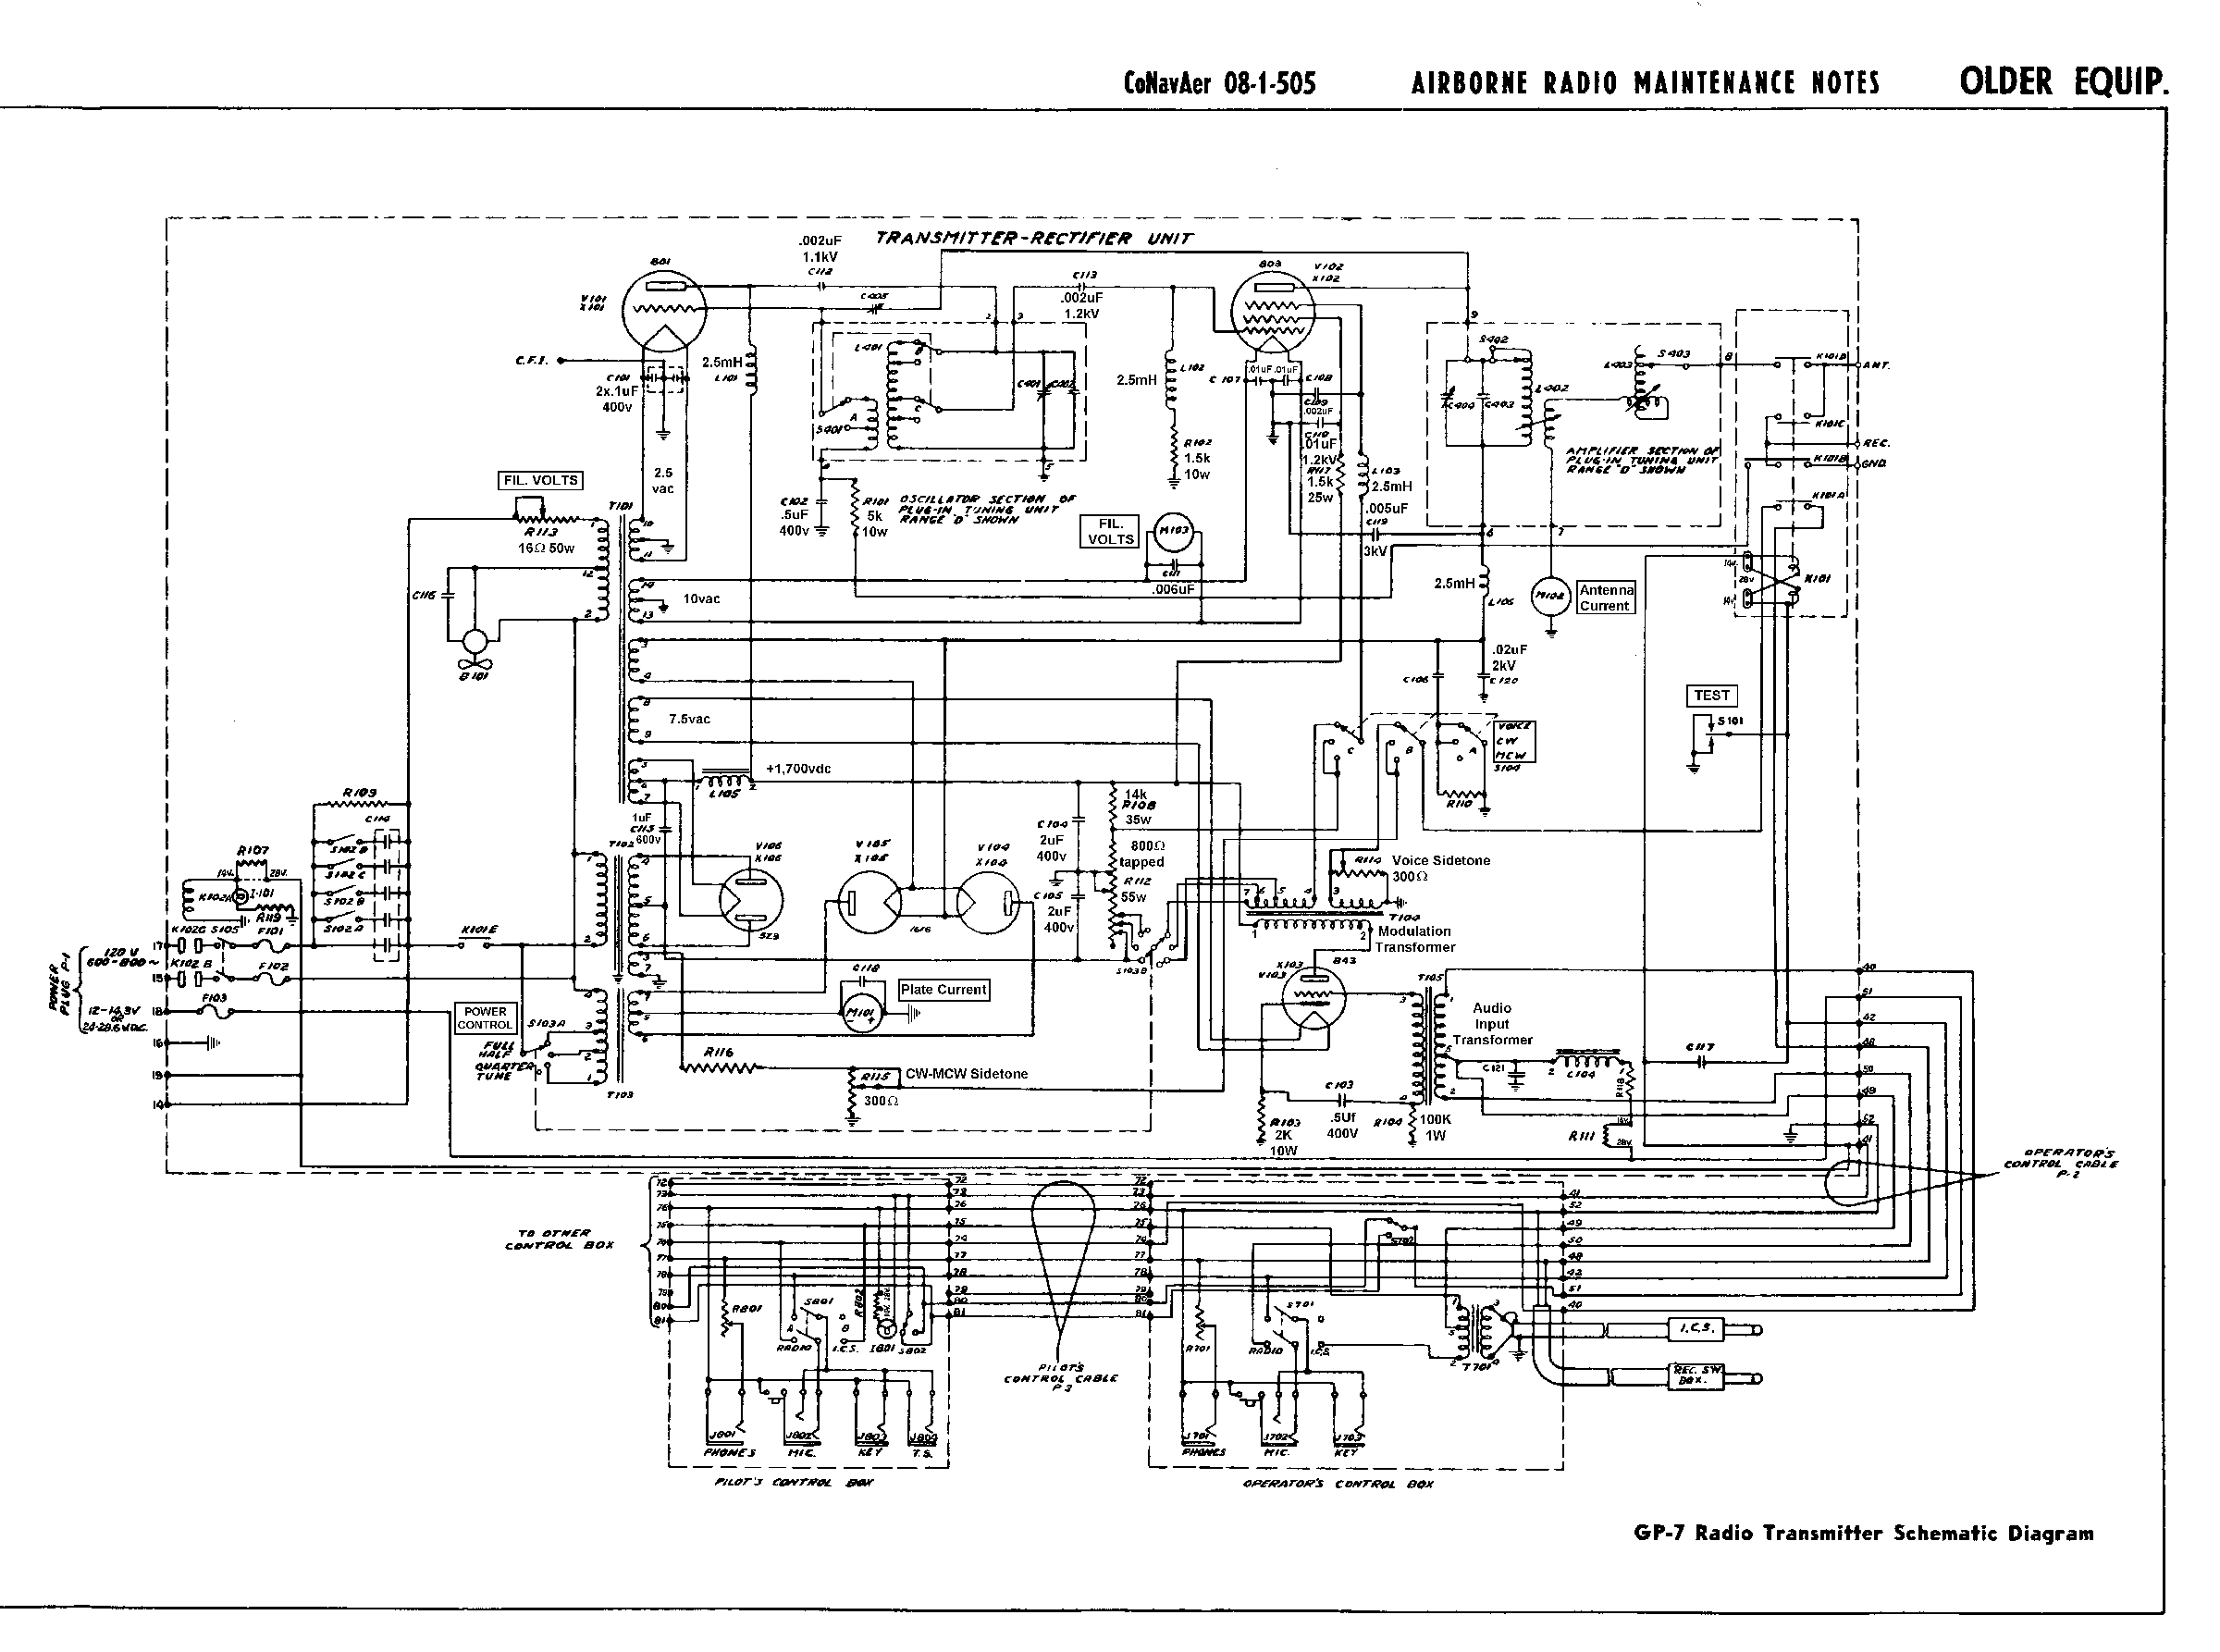 Aircraft Radio Wiring Schematic Auto Electrical Diagram Hmmwv Documents Truck Schematics Boeing